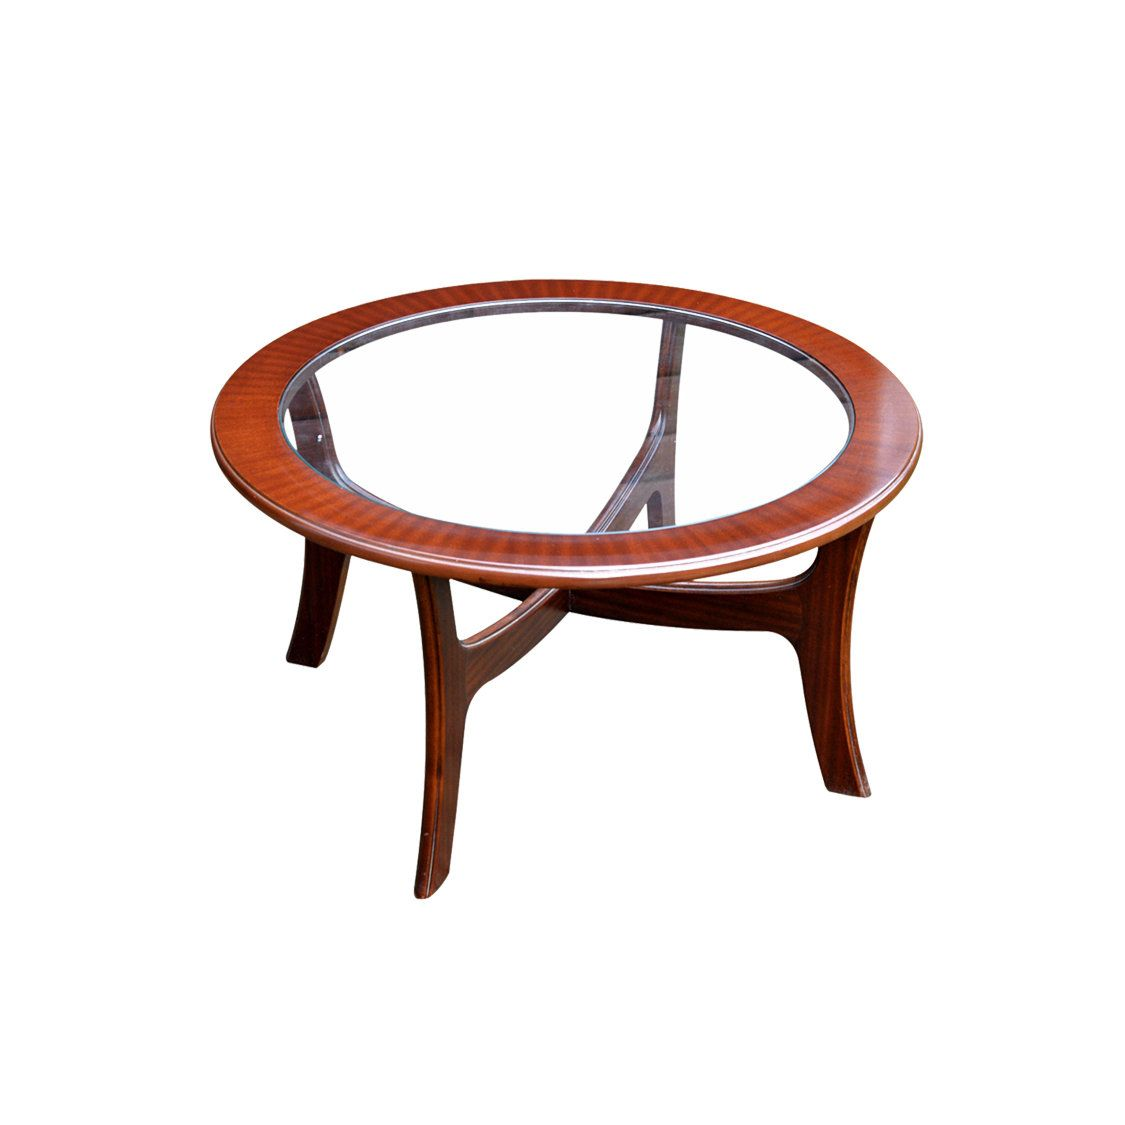 G Plan Teak Round Glass Top Occasional Table 1980s Etsy Occasional Table Vintage Table Coffee Table [ 1125 x 1125 Pixel ]